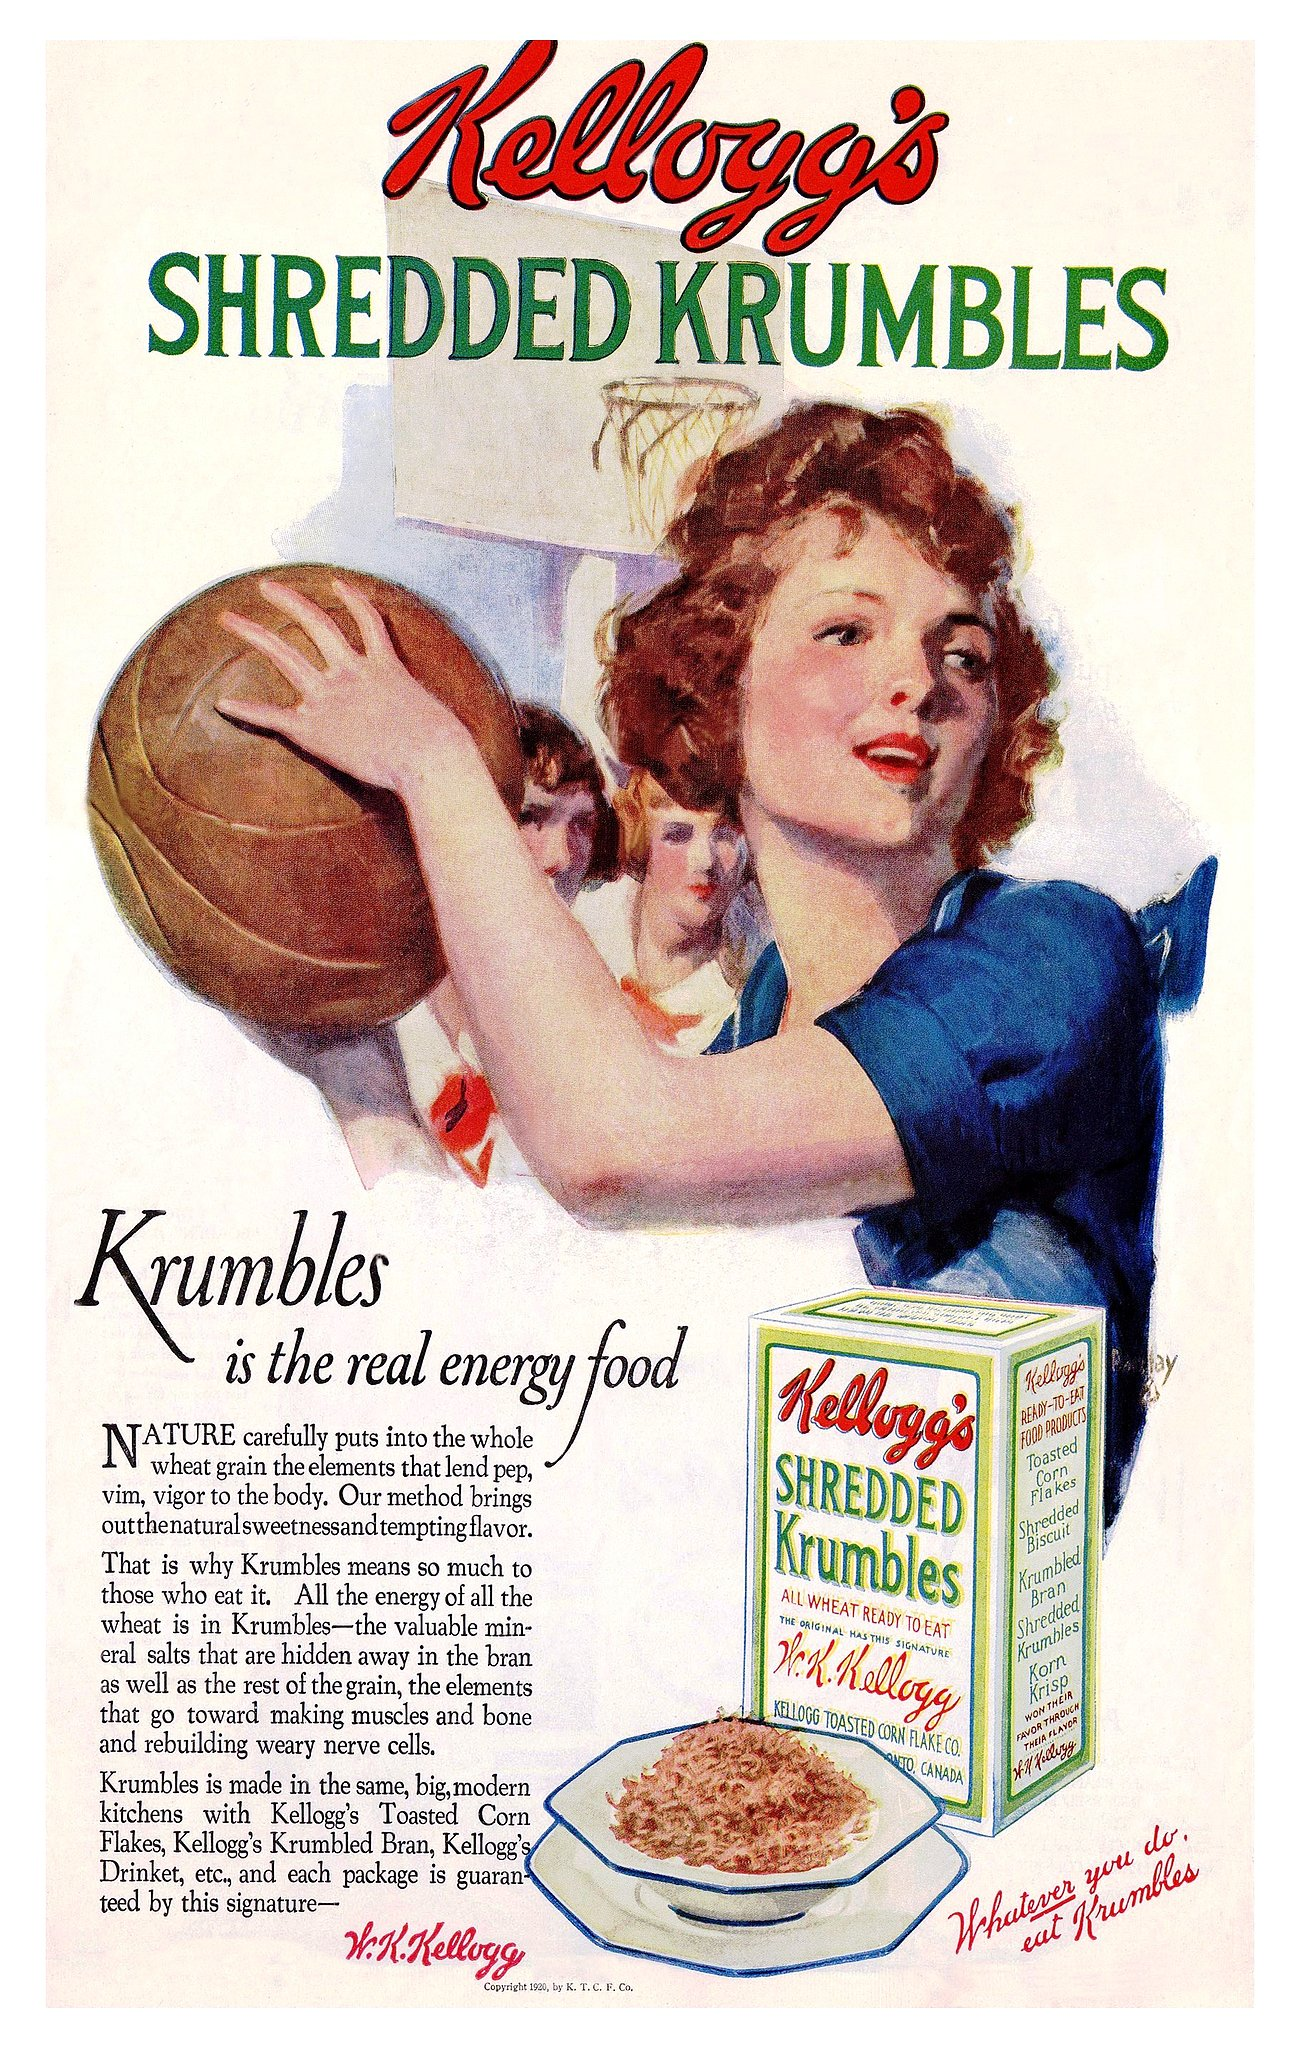 Fuel up for the big game with Krumbles.